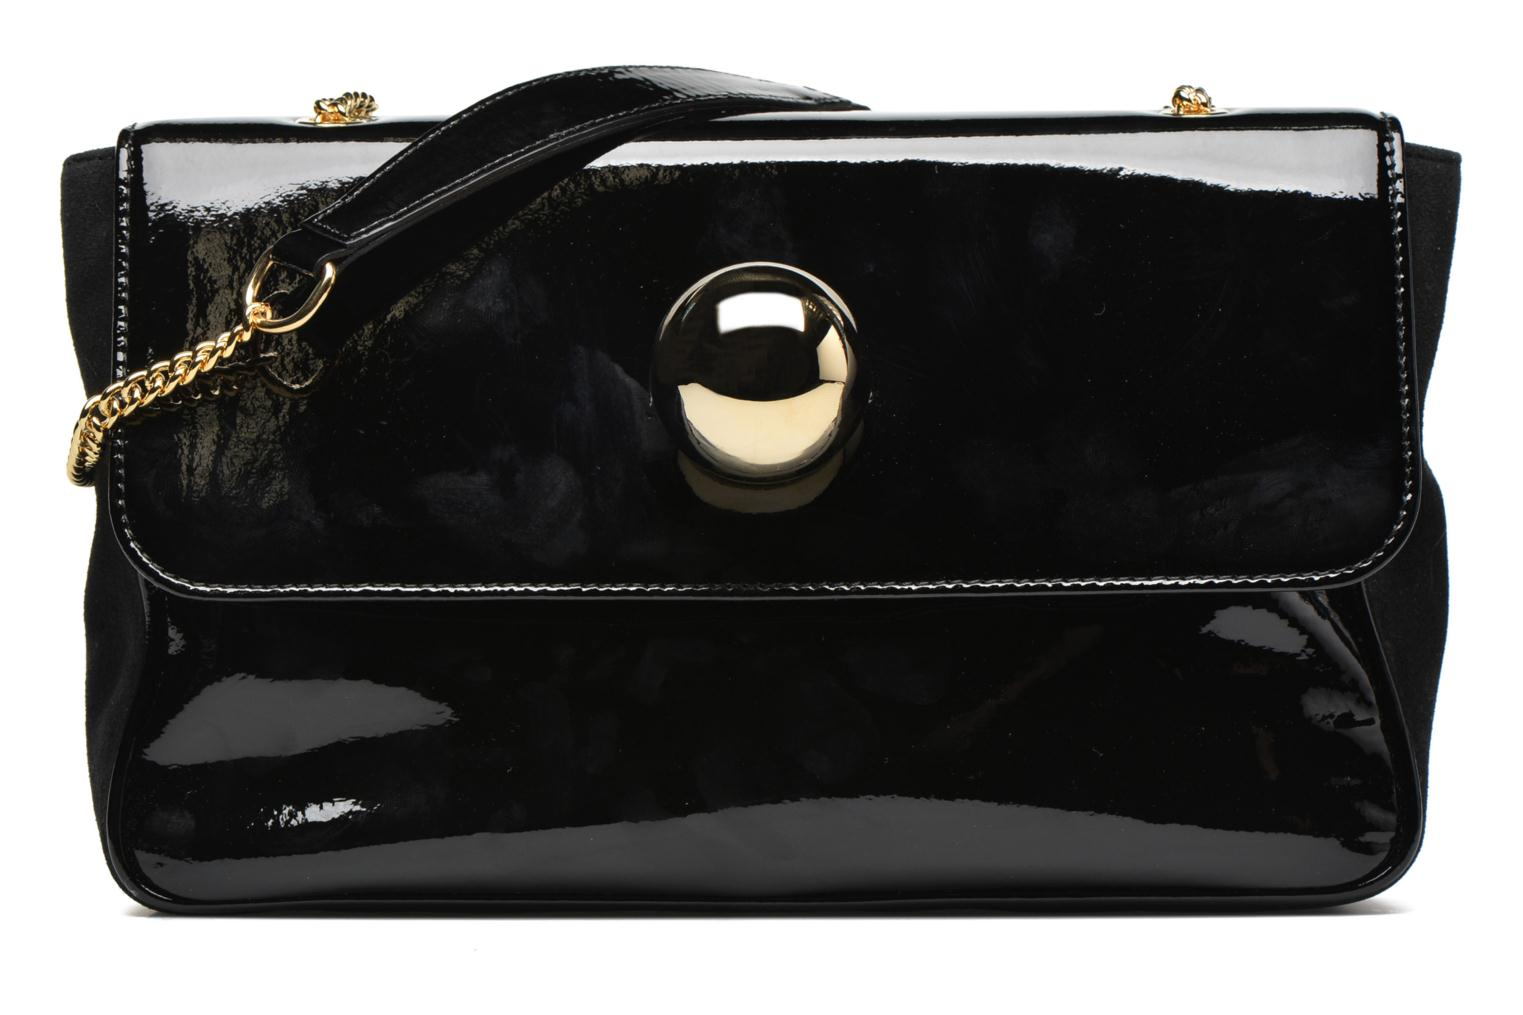 Sacs à main Vivienne Westwood MIRROR BALL Shoulder bag Noir vue détail/paire